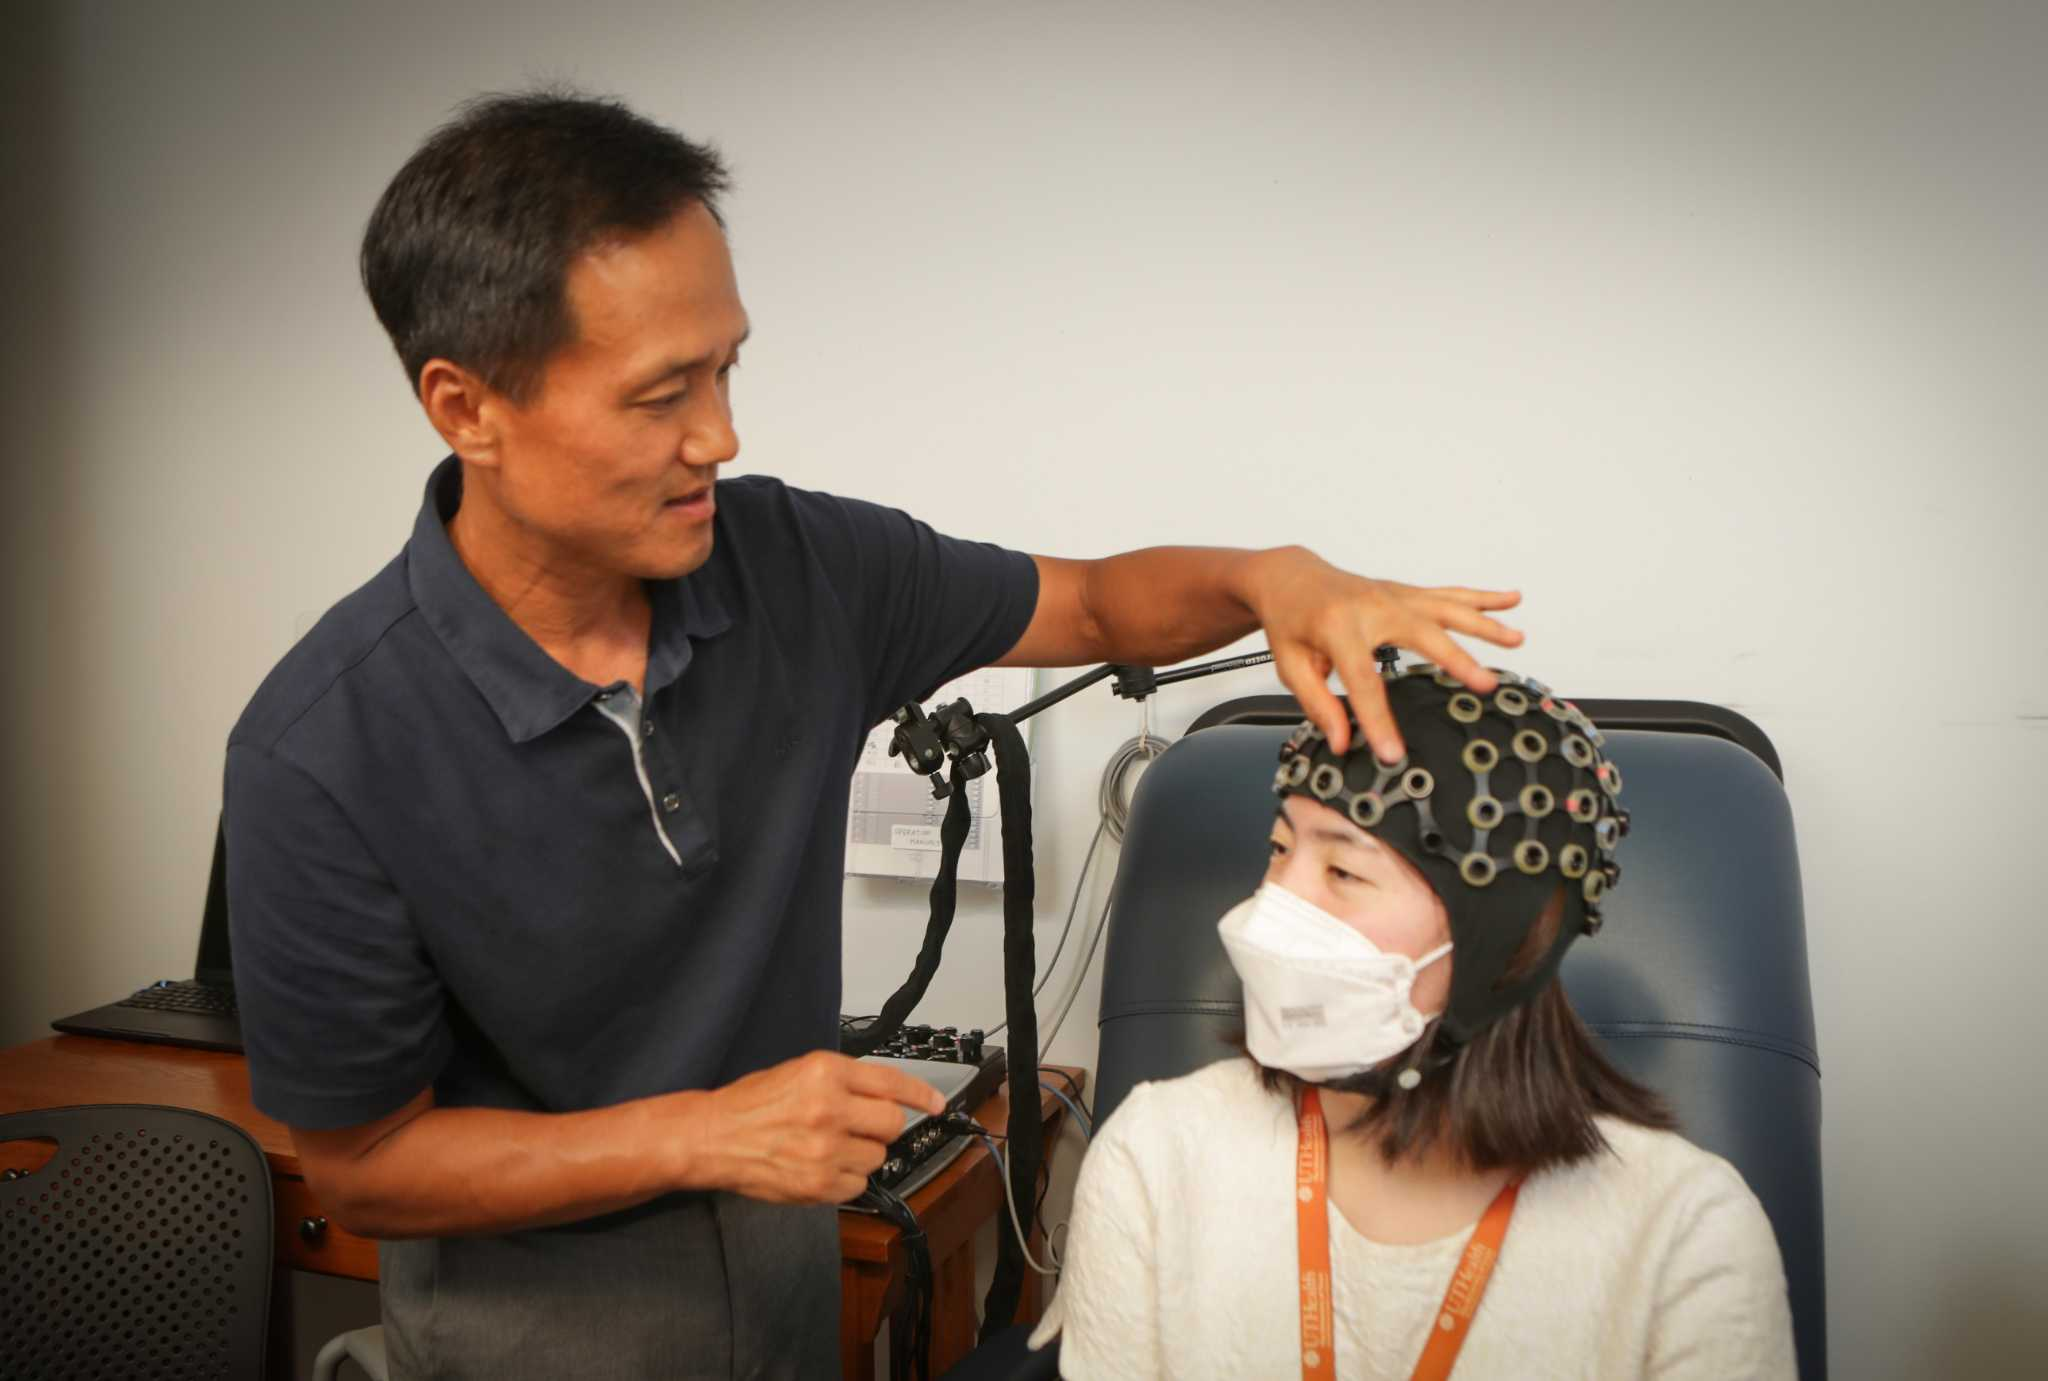 Could brain massage therapy be the key to pain reduction? One Houston doctor tests the theory.